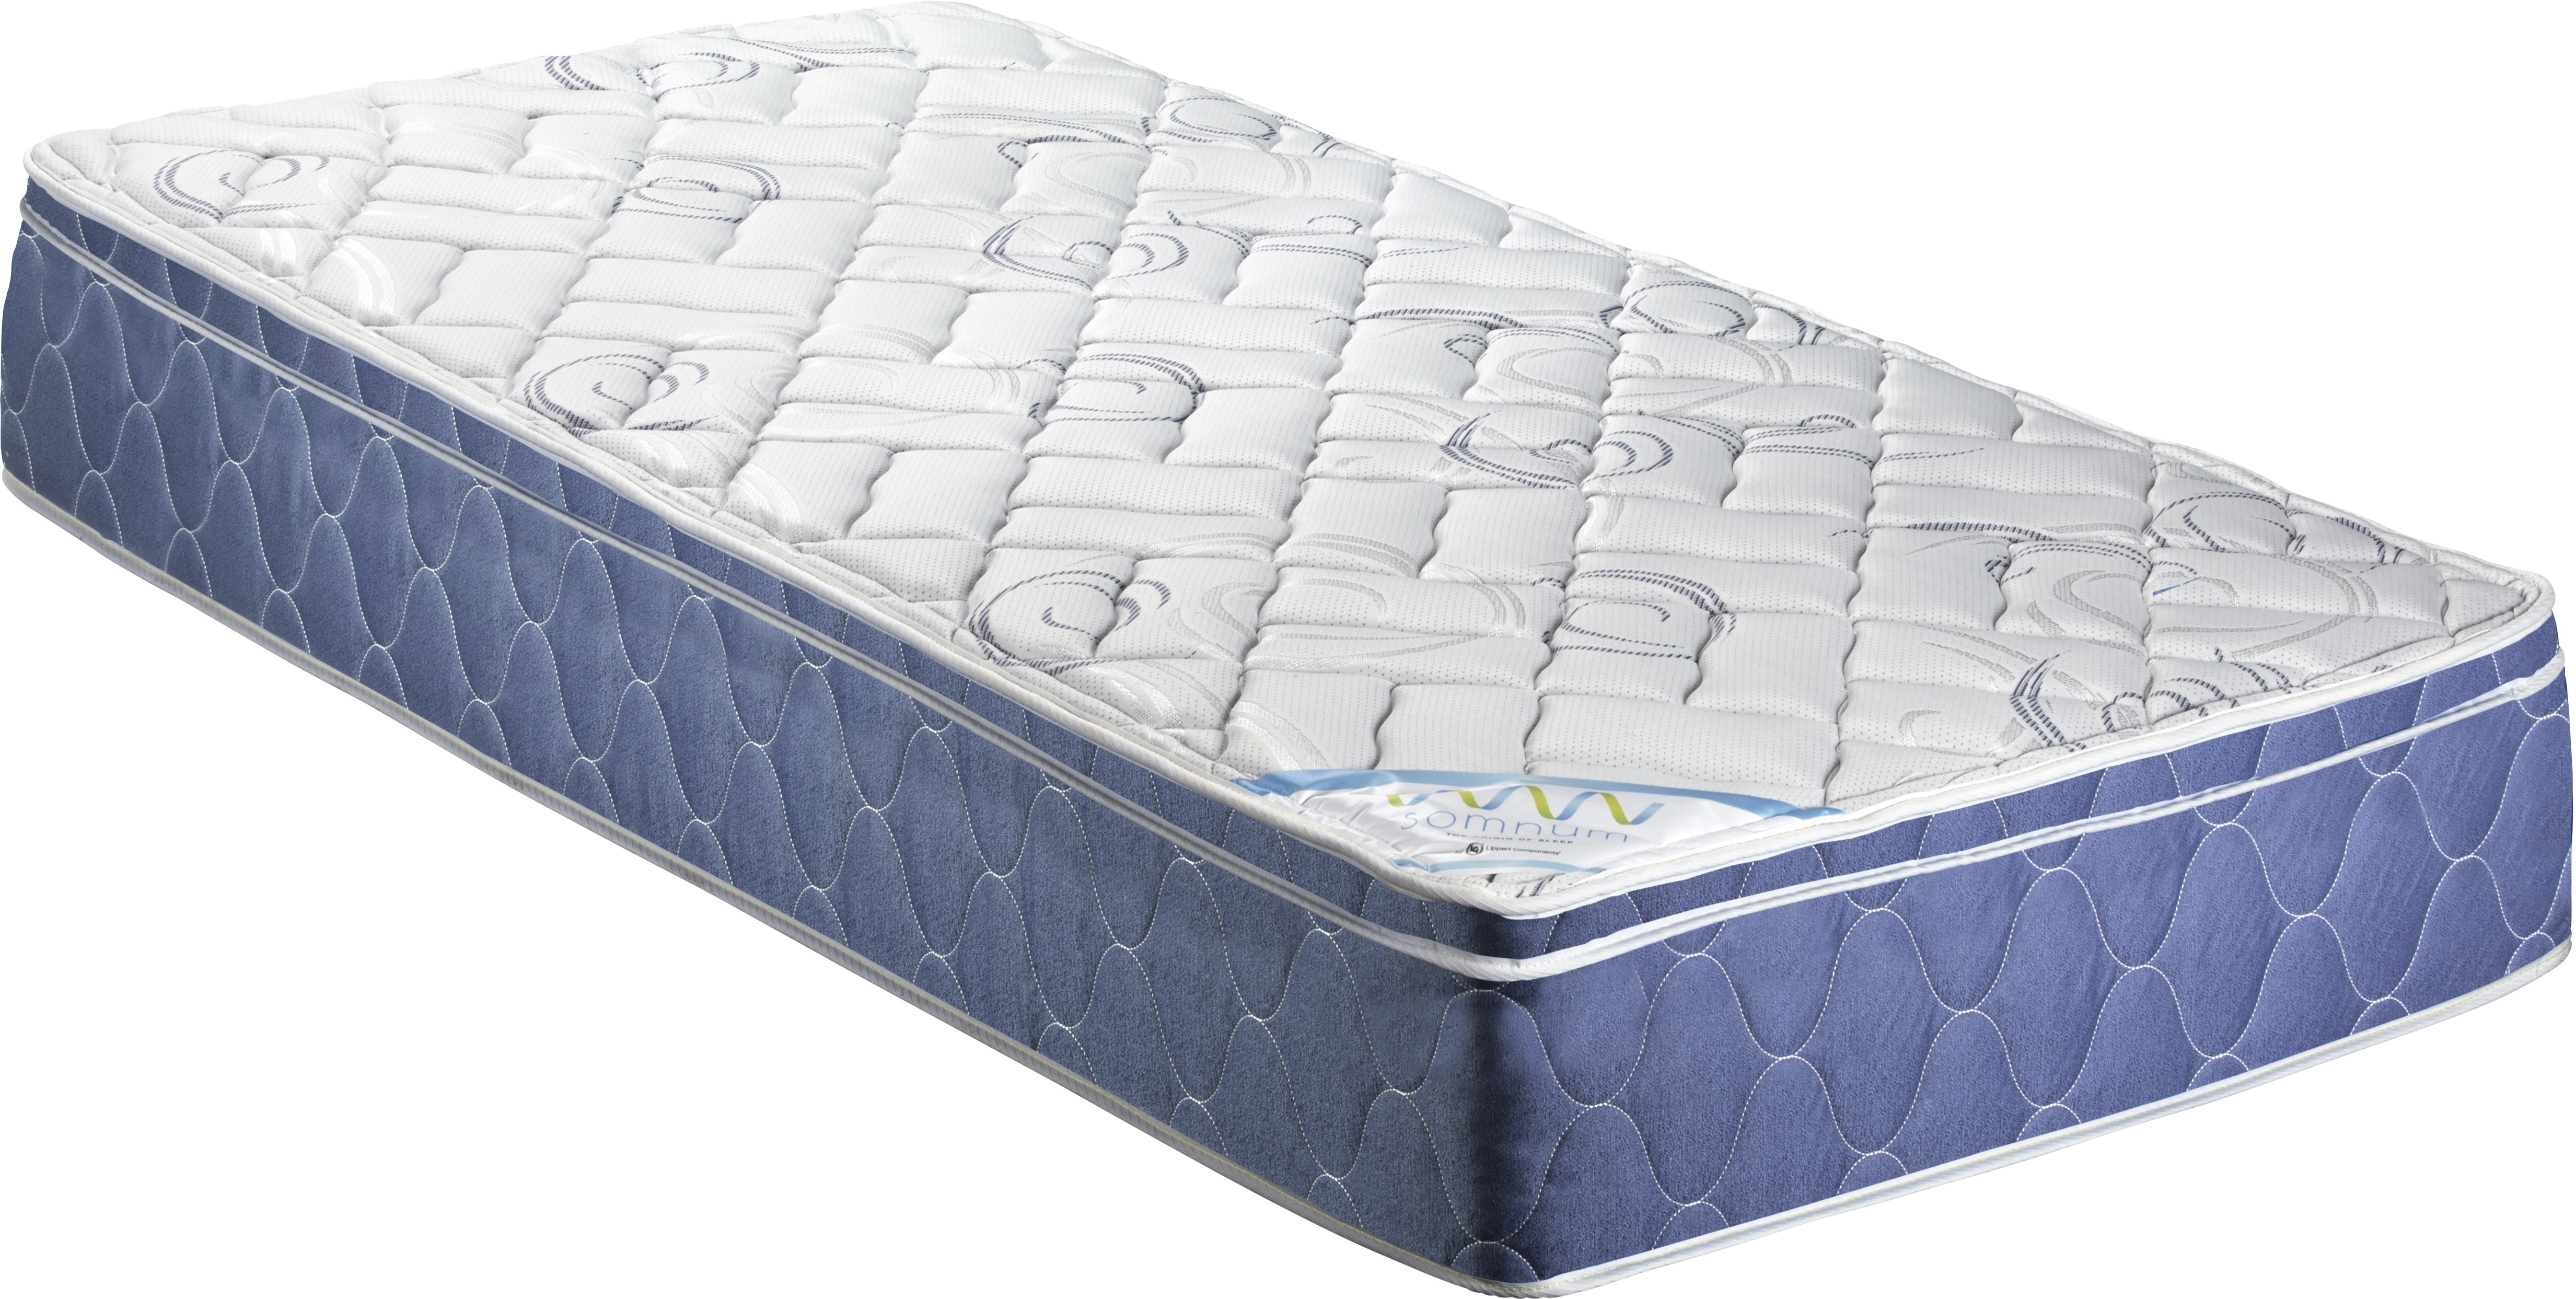 Latex Foam Mattress Lippert Launches Premium 10 Inch Discovery Mattress Truck News